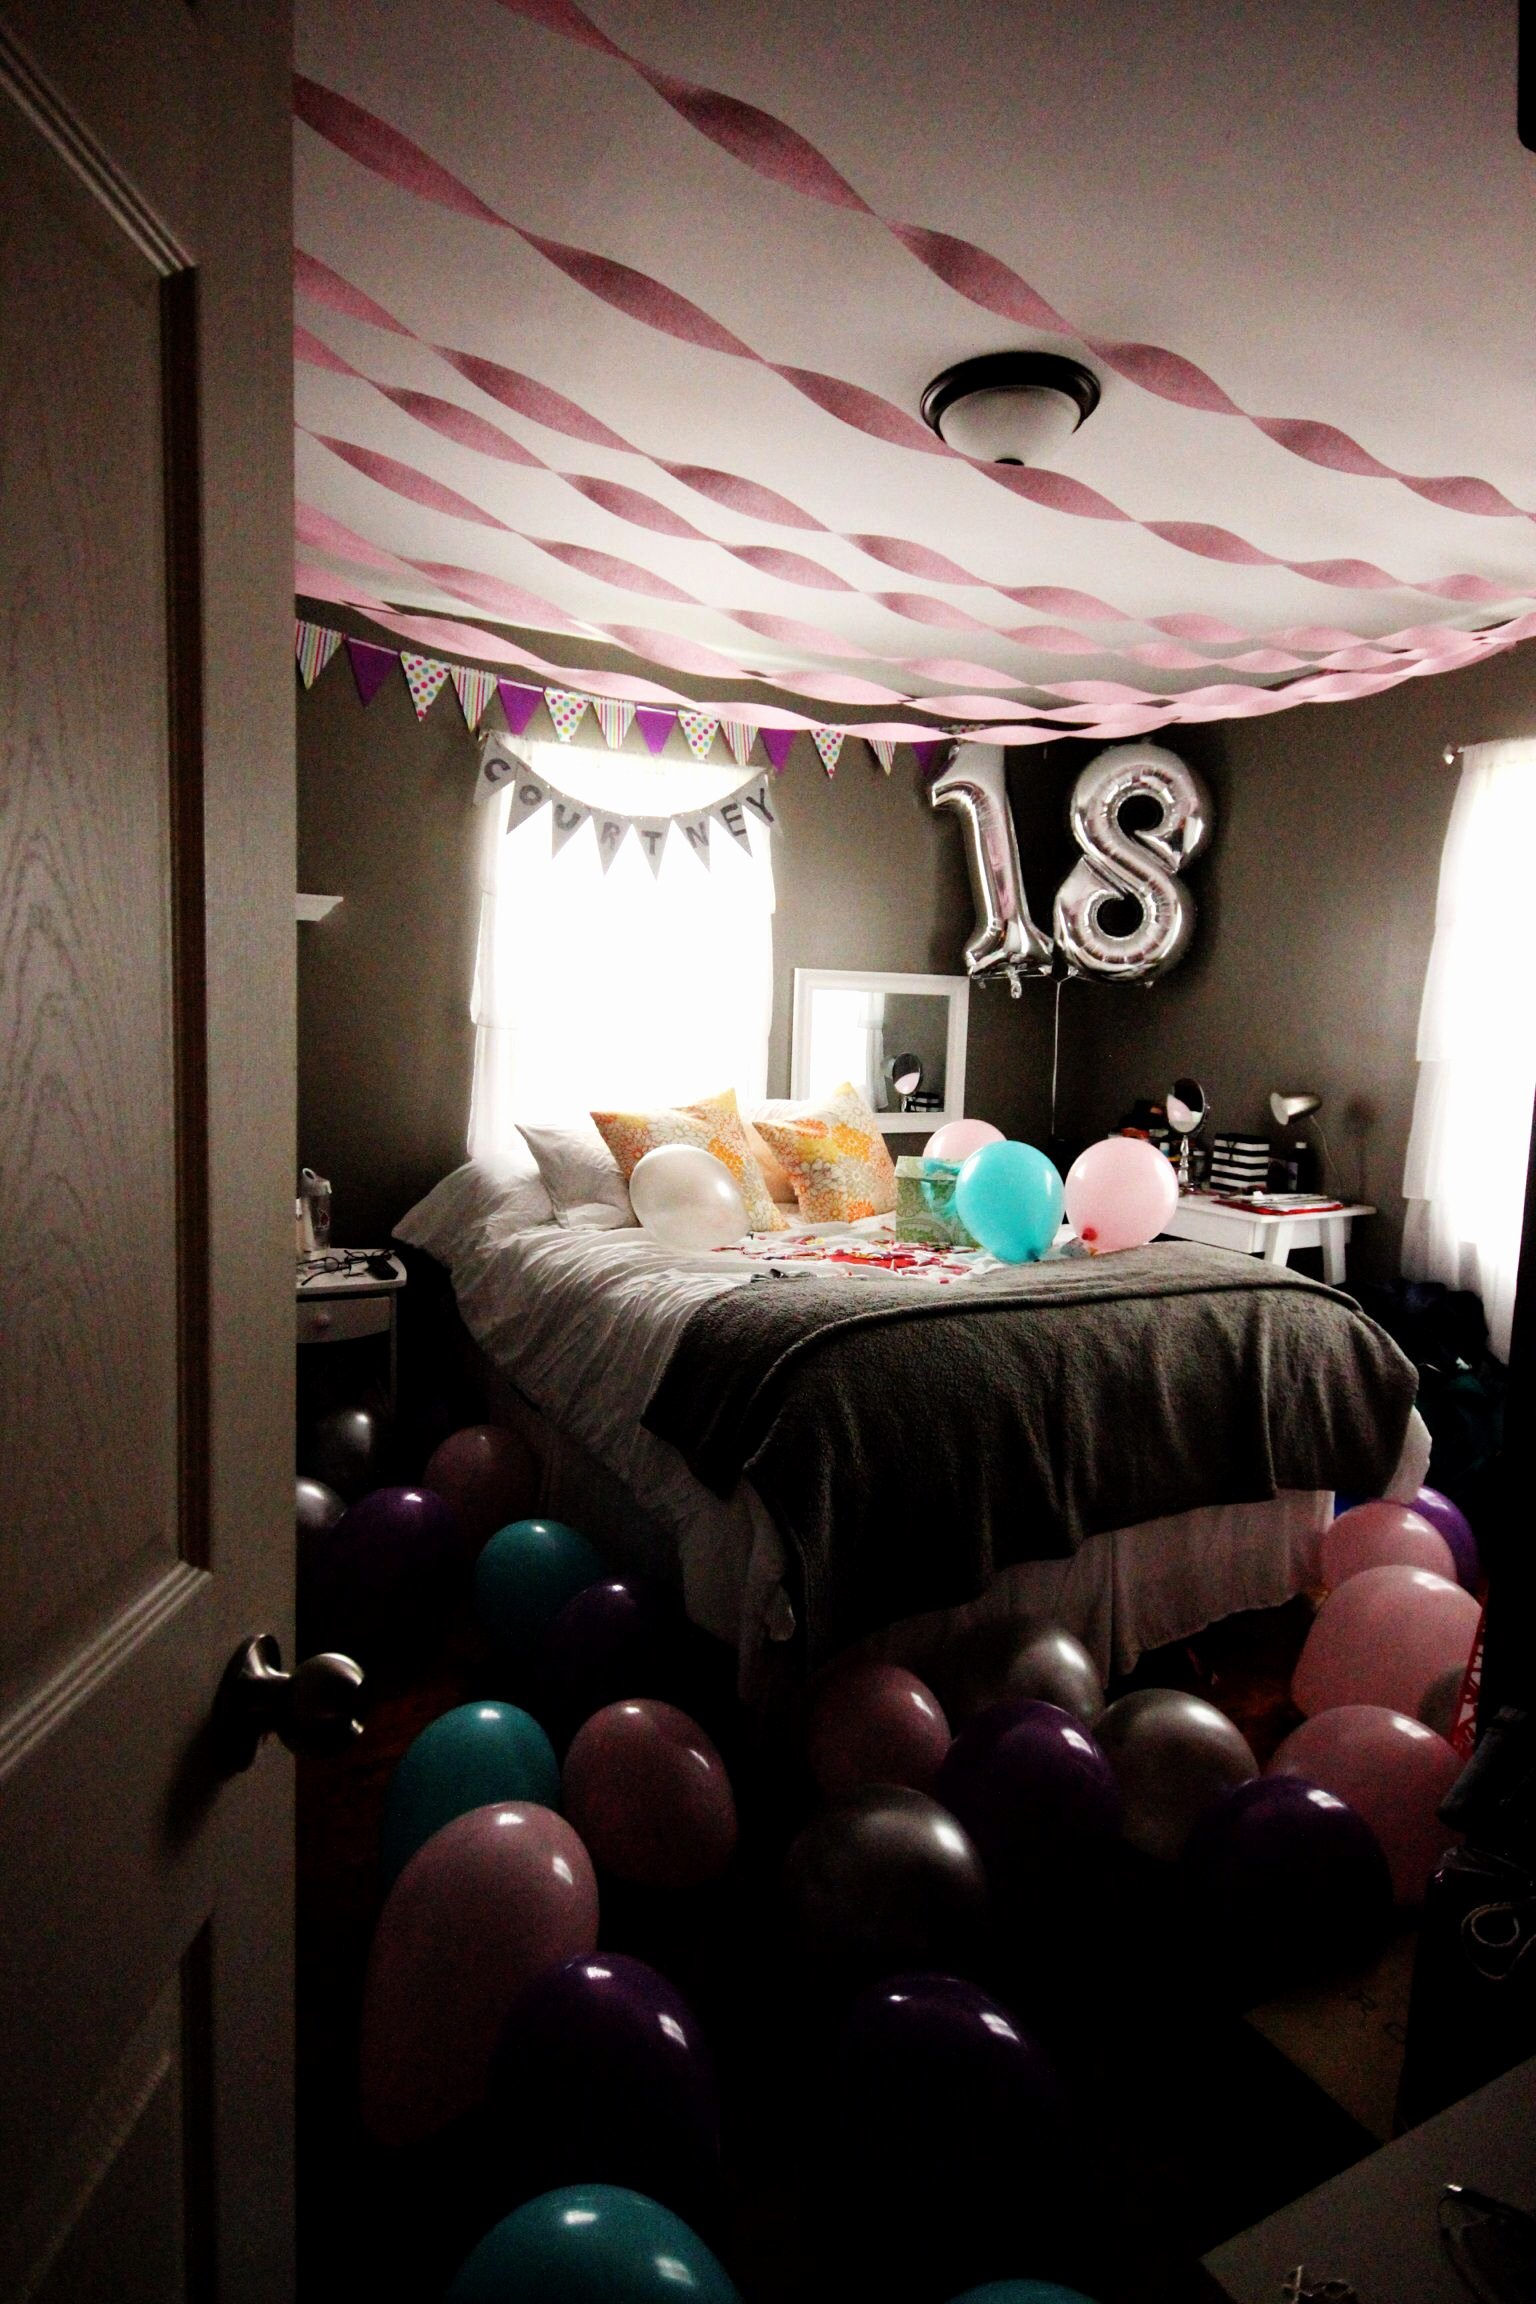 Birthday Decoration Ideas In Room New Bedroom Surprise for Birthday